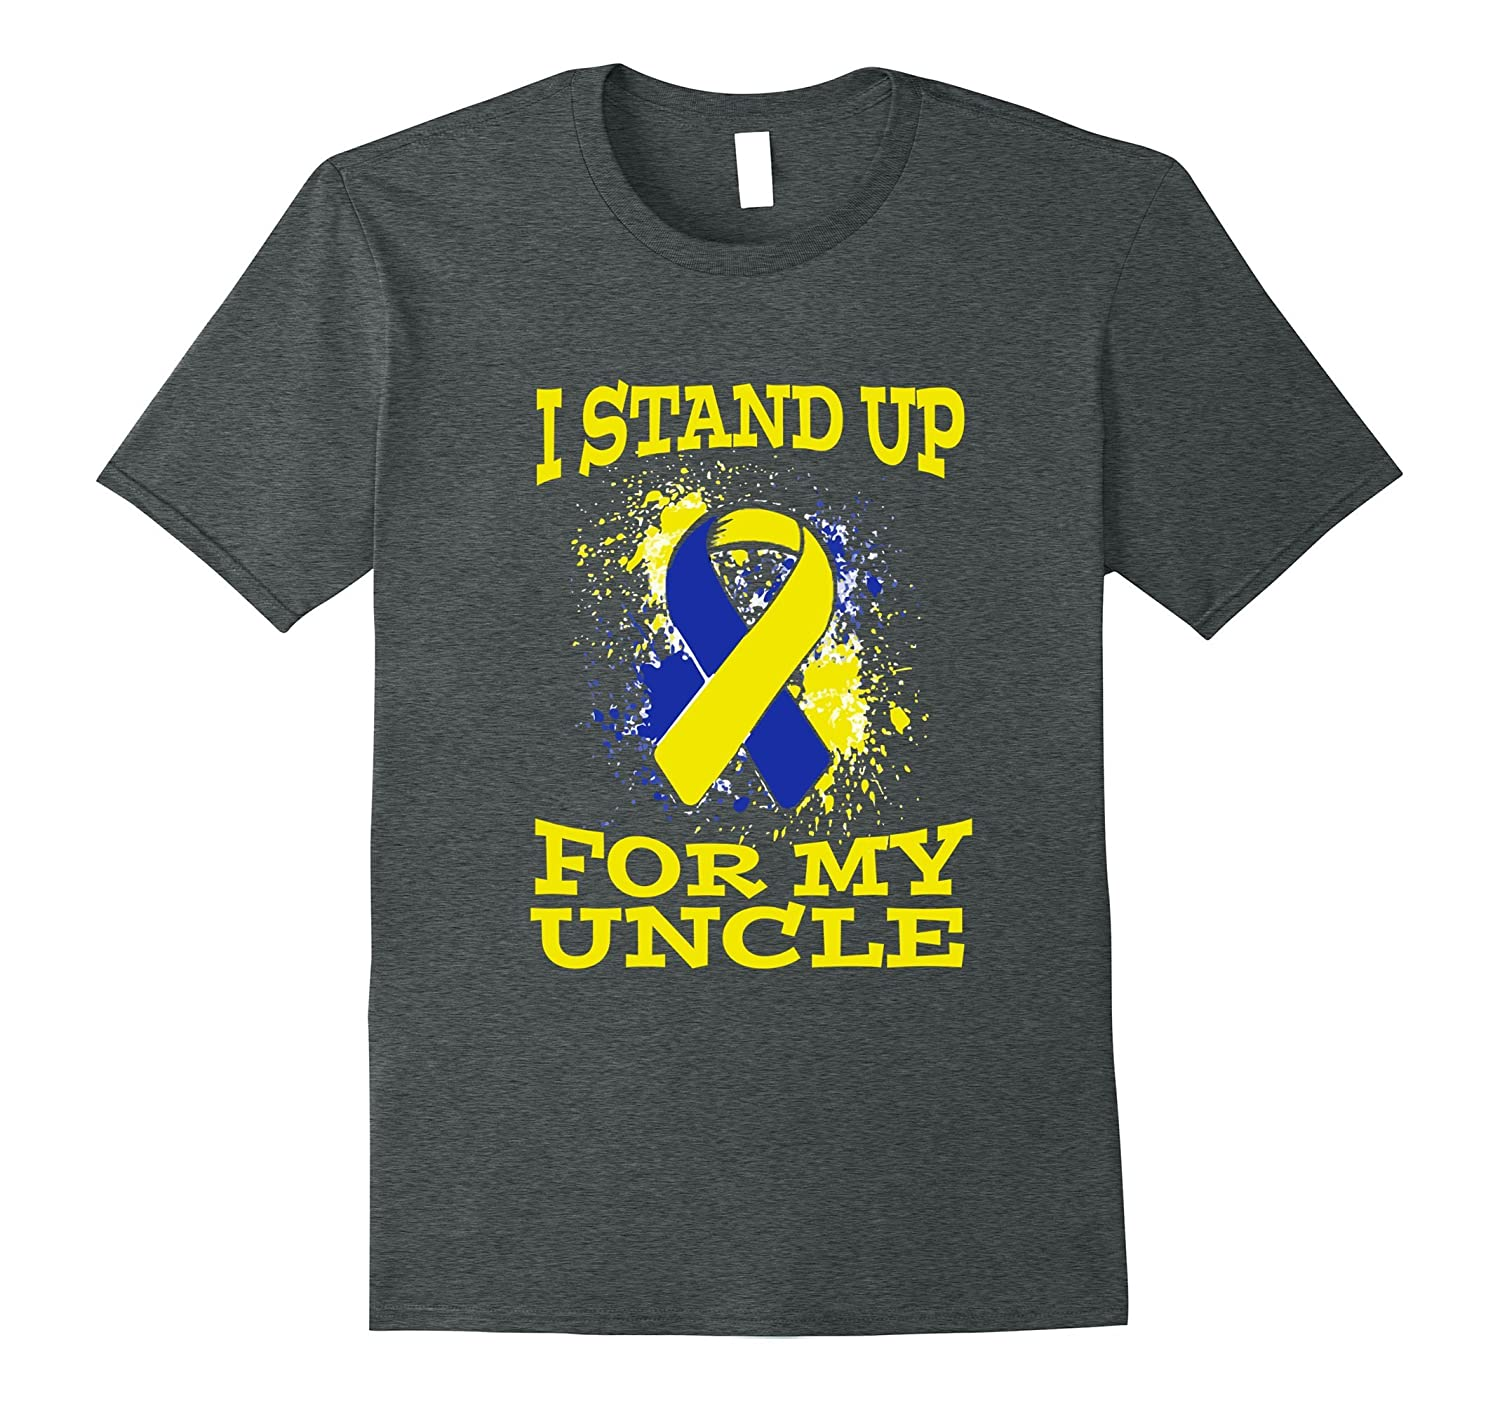 I Stand Up For My Uncle Tshirt Down Syndrome Awareness-FL